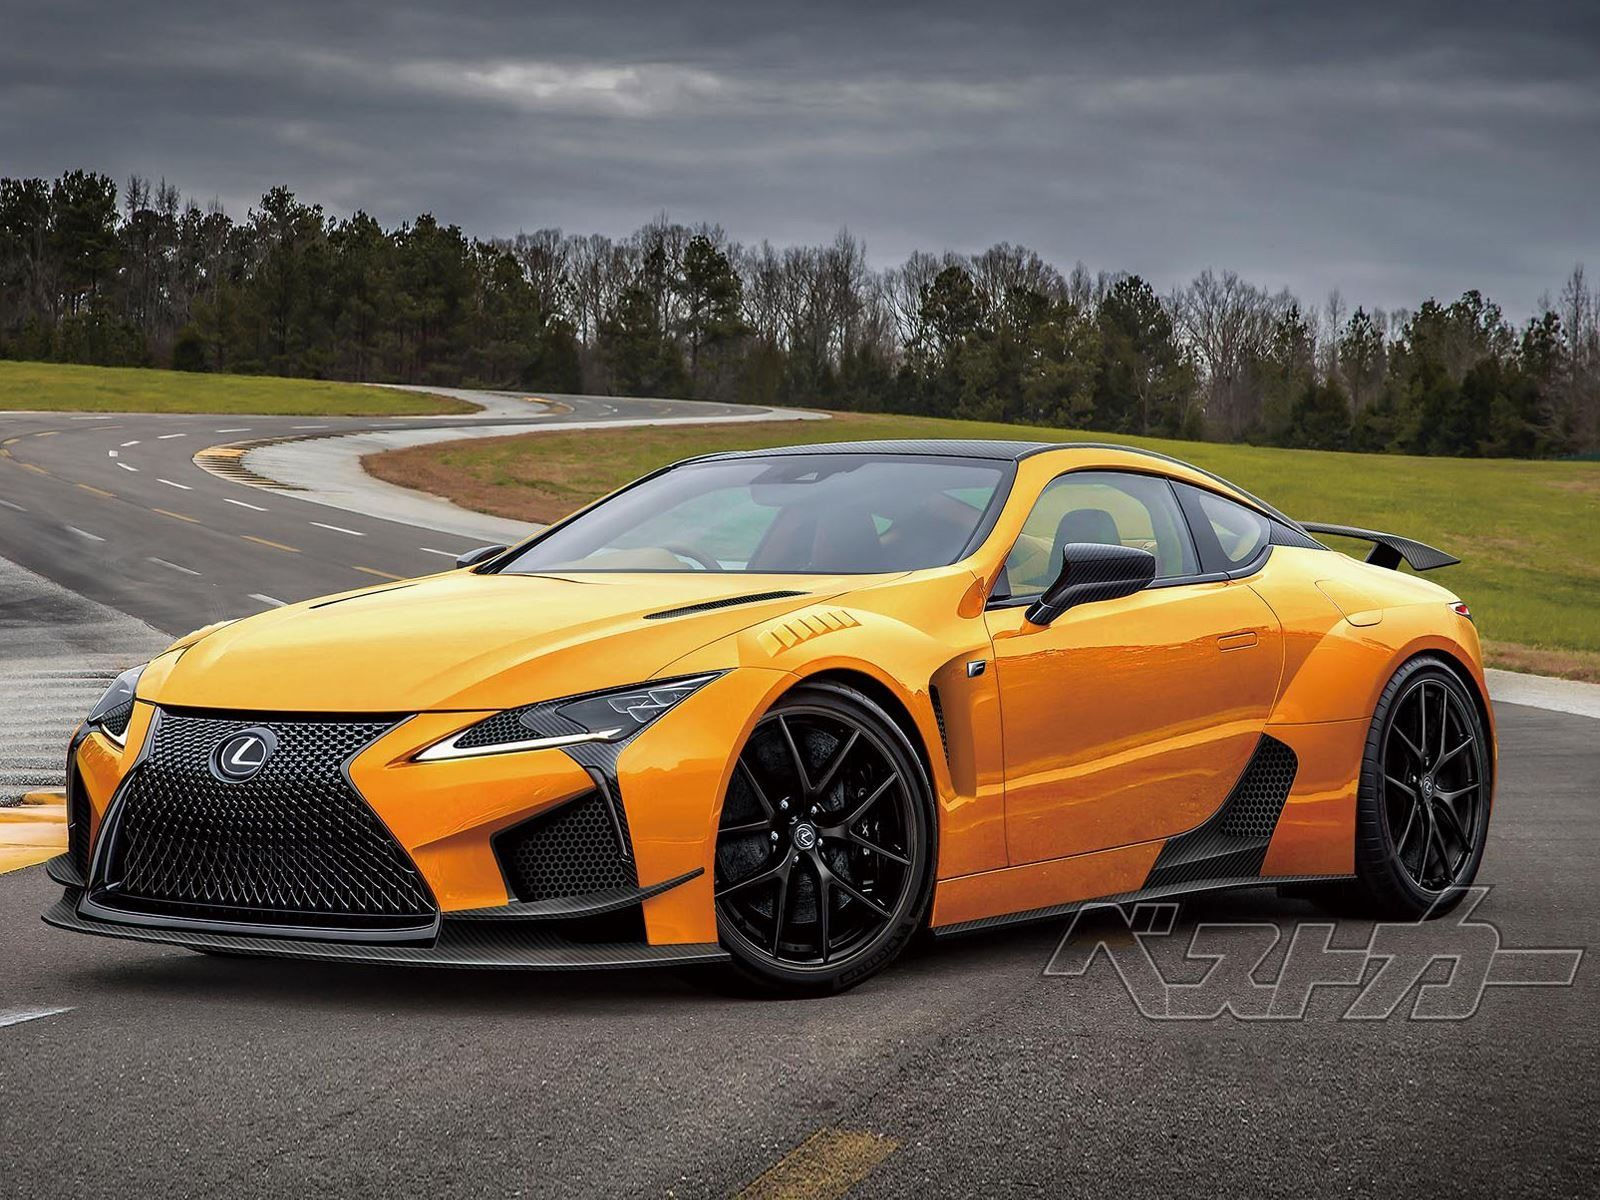 600 Hp Lexus Lc F Won T Join The Party Until 2022 Why The Wait For Something So Brilliant Lexus Lc Lexus Sports Car Lexus Lfa